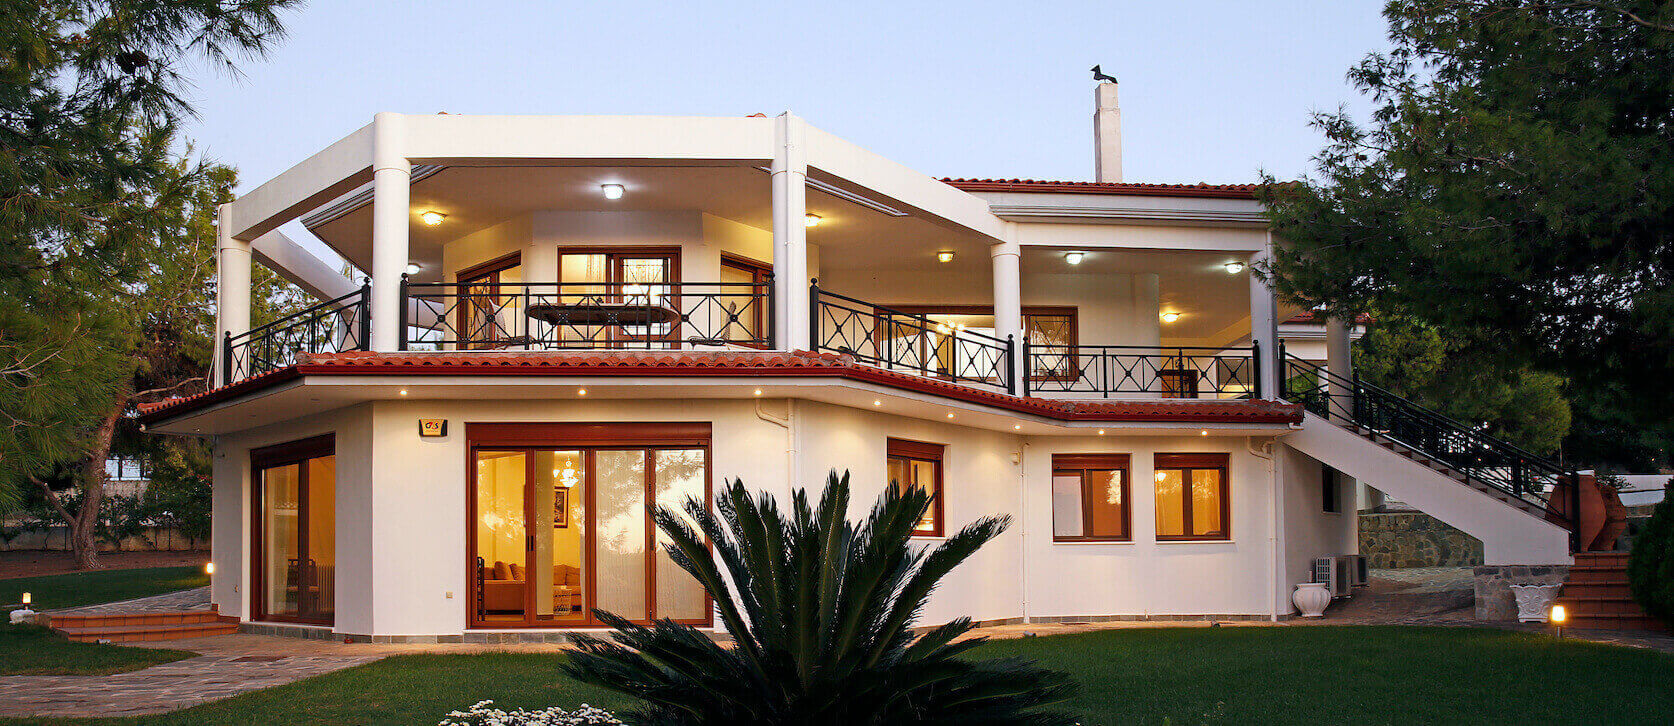 The luxury Loutraki Green Villa exterior. Located amongst pine trees it offers privacy and comfort.